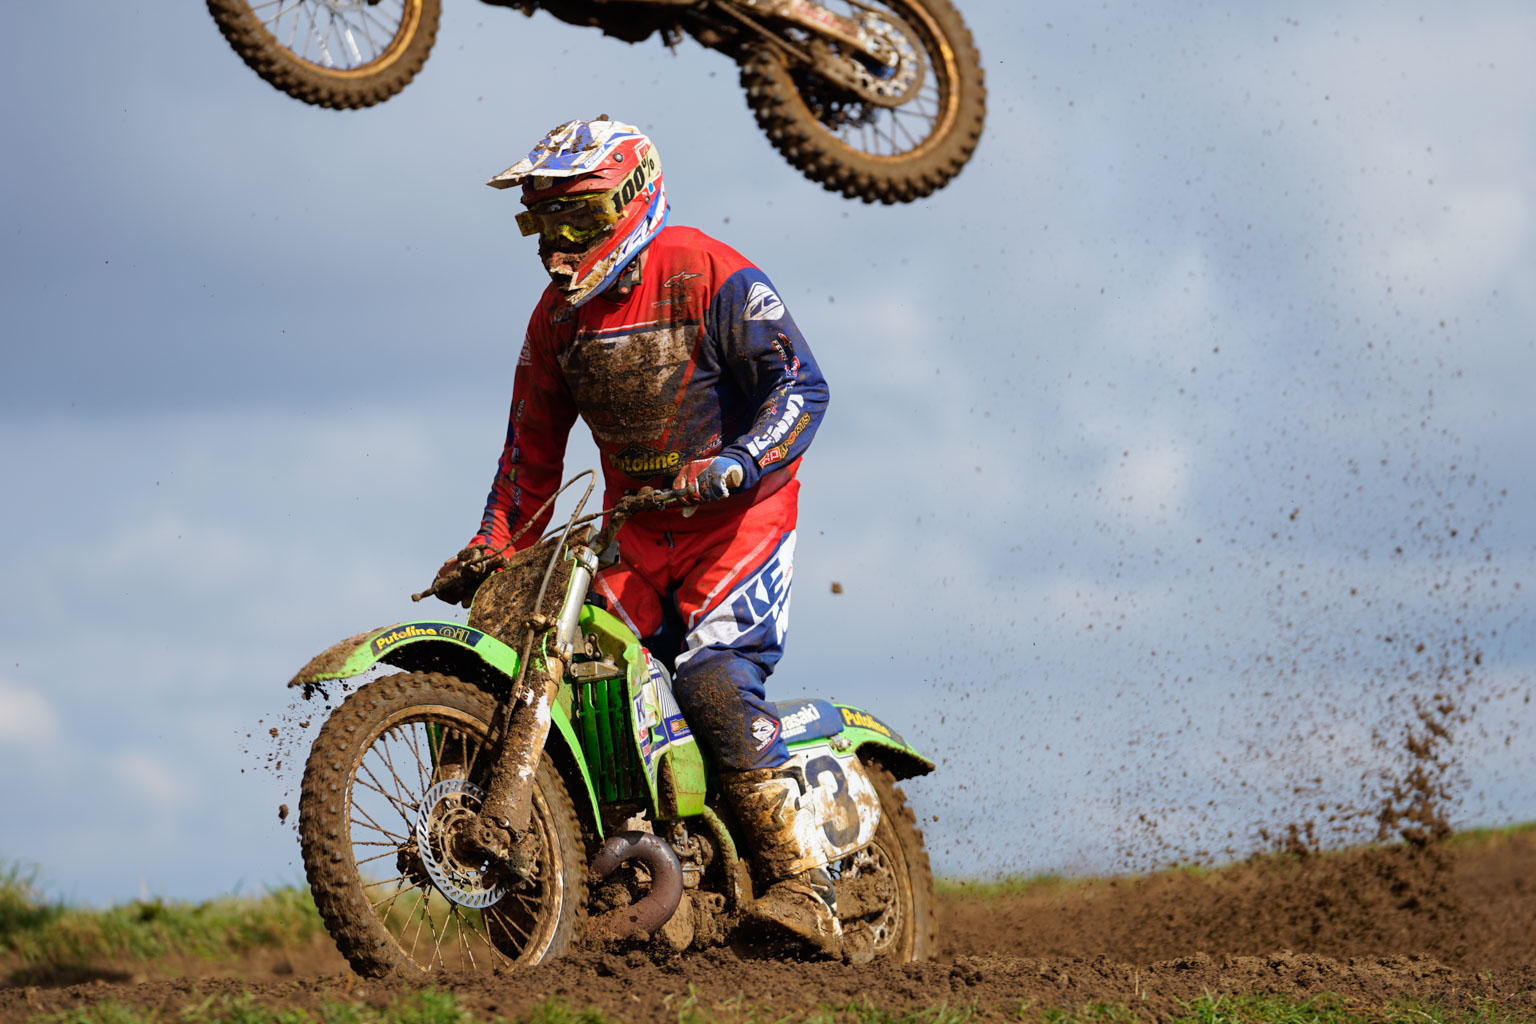 He's above you! Brian Wheeler rides the old KX500 and takes the low route while others obviously don't